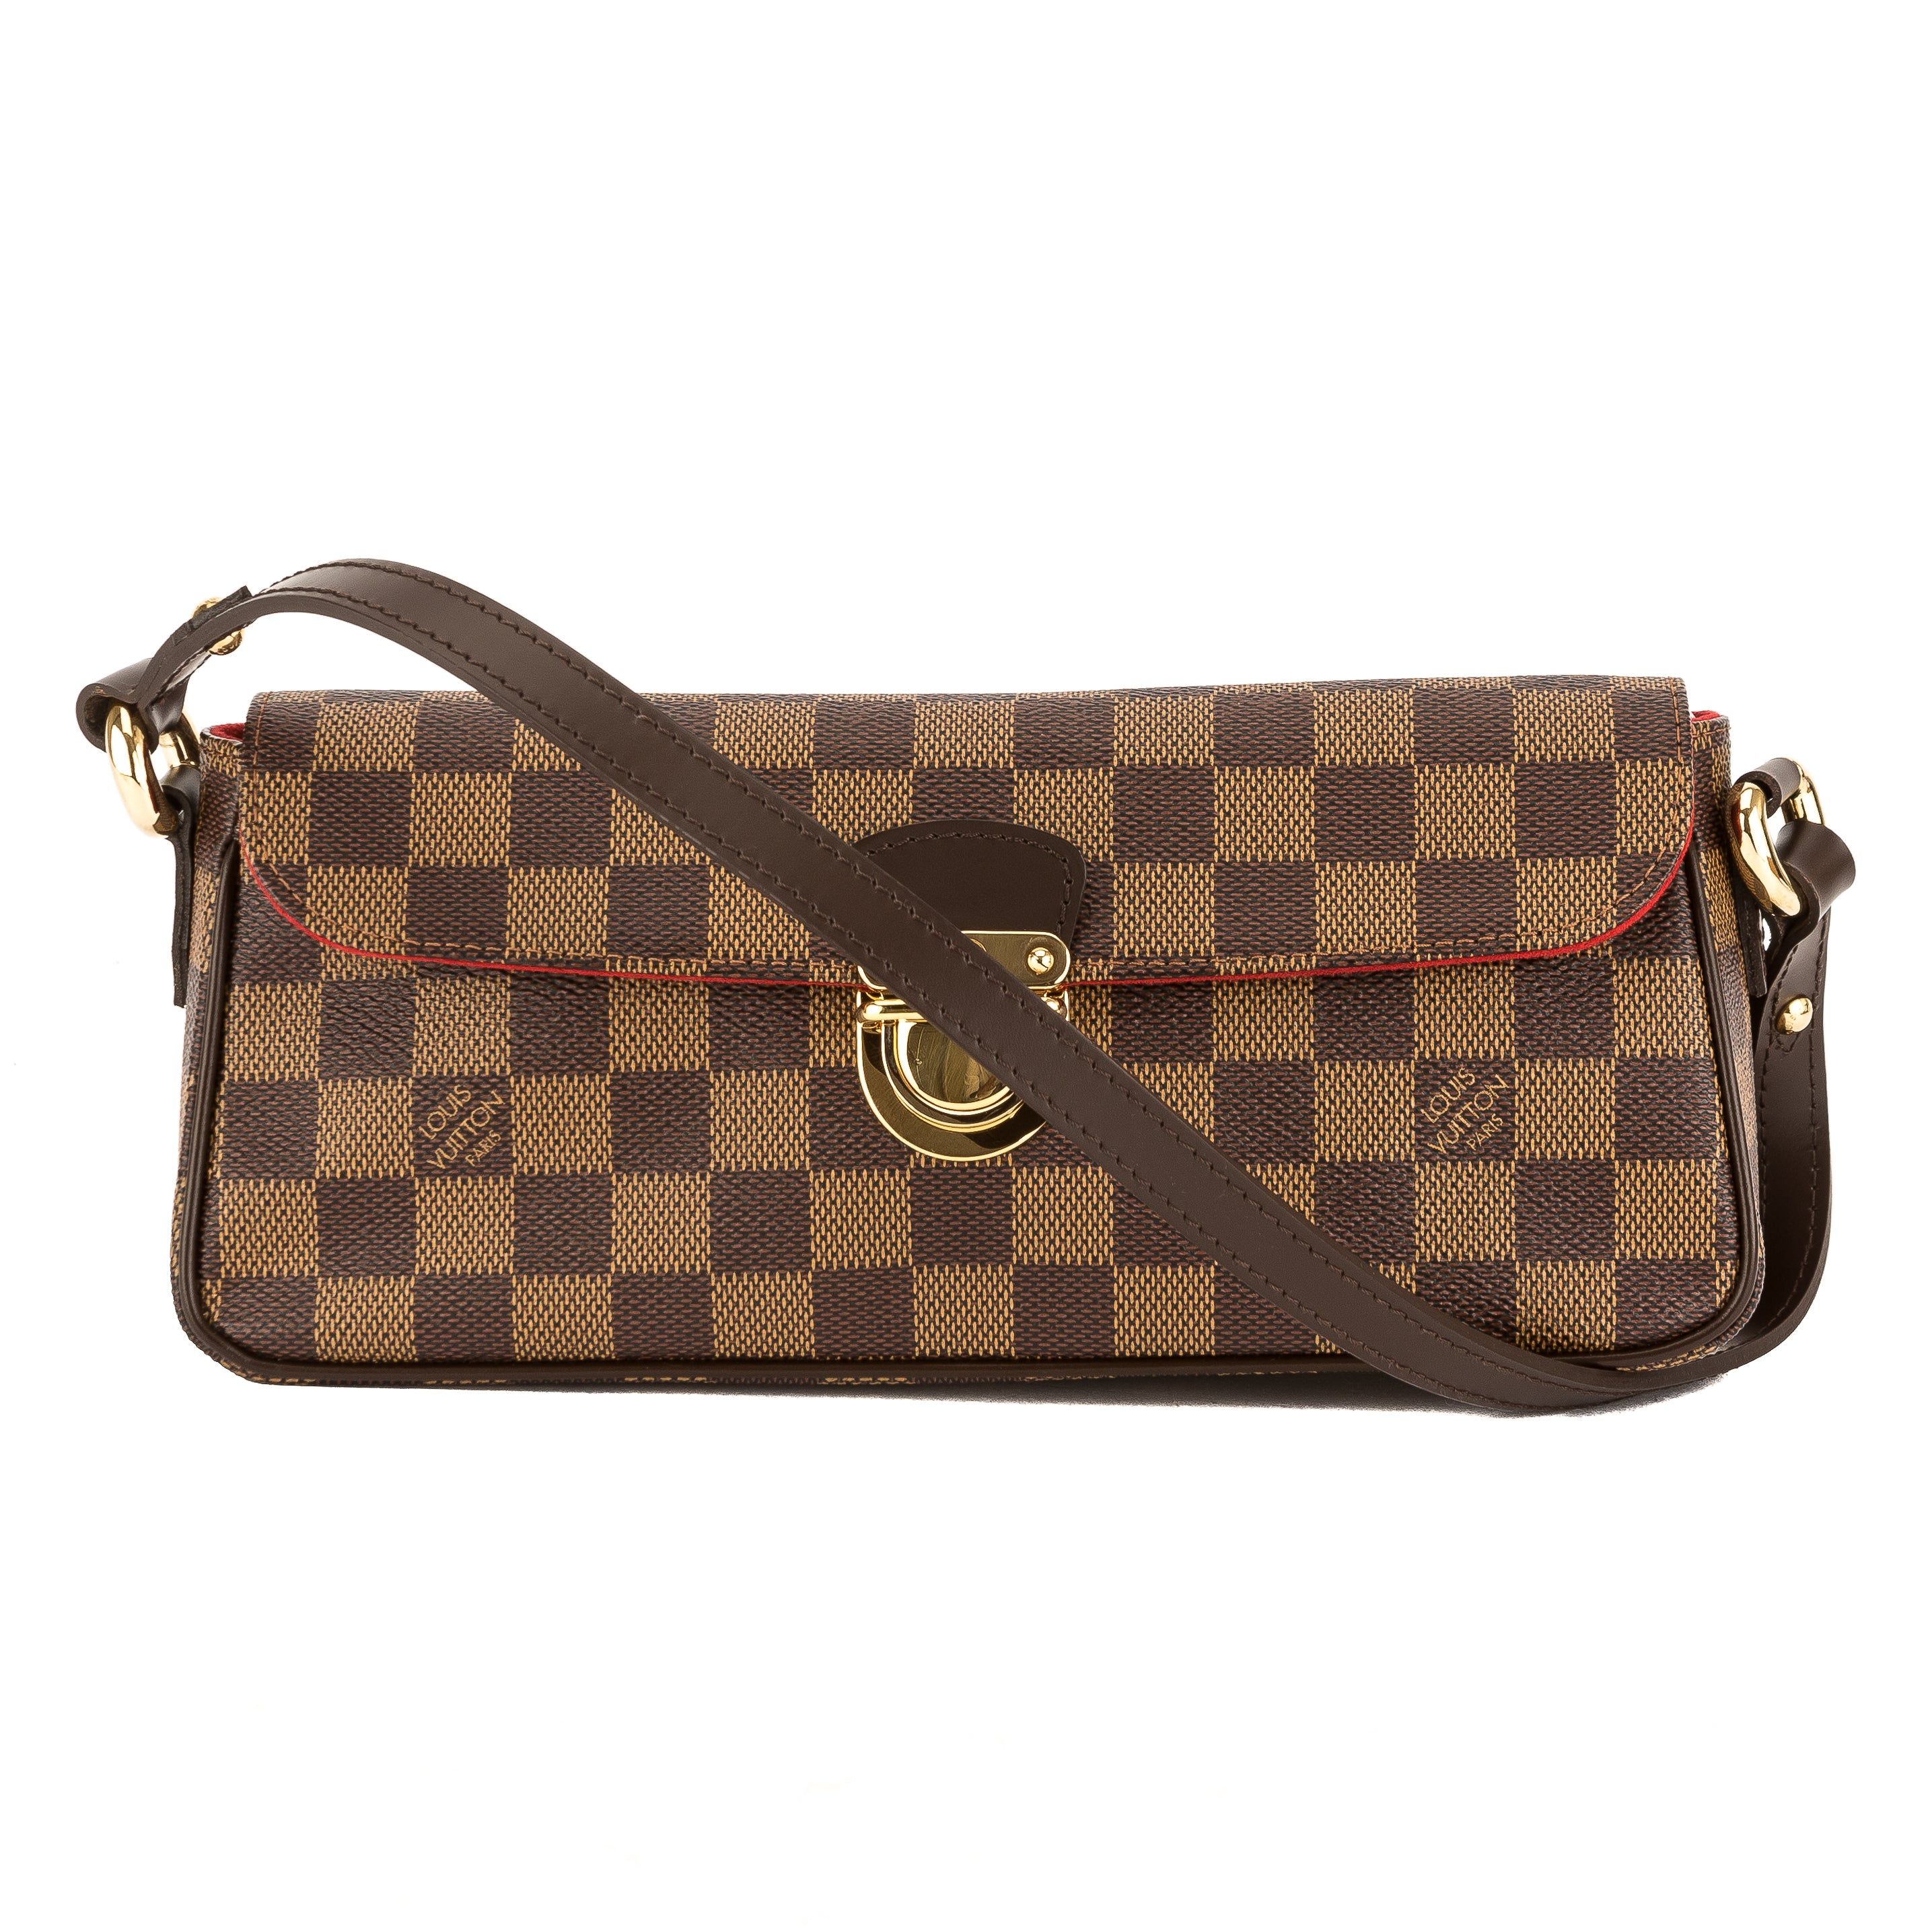 4a0b9b8b8 Louis Vuitton Damier Ebene Canvas Ravello PM Bag (Pre Owned ...